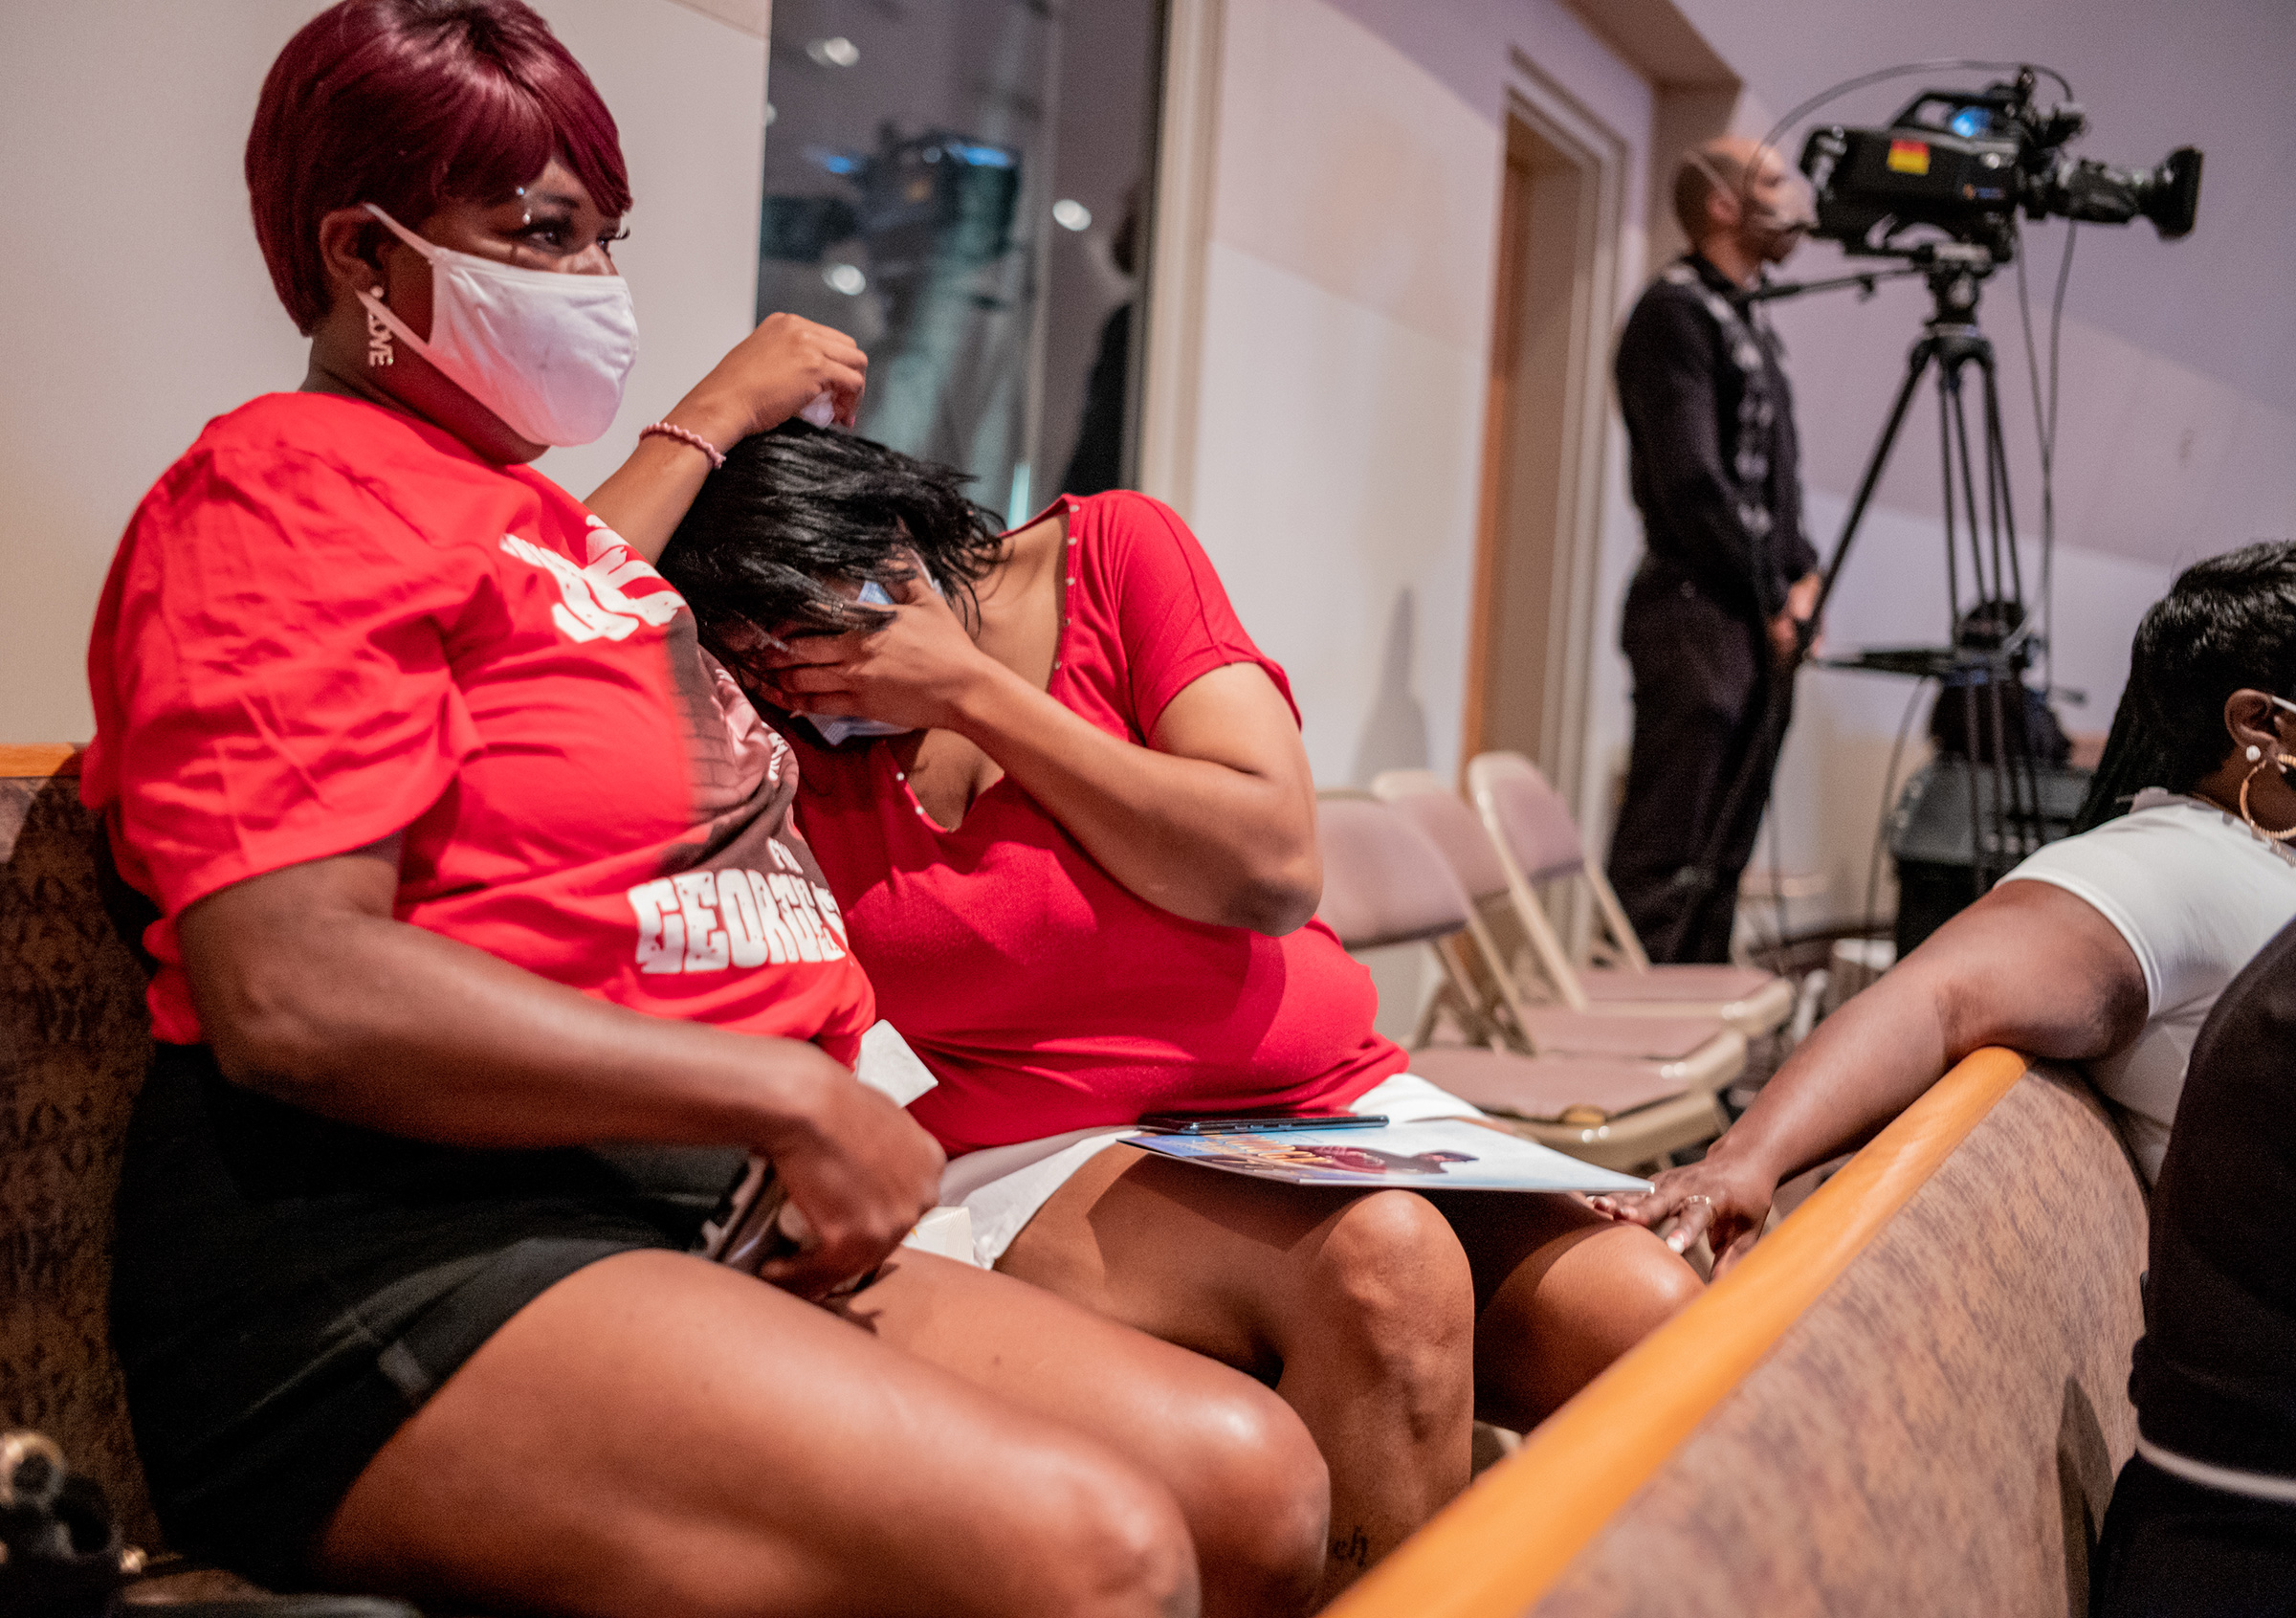 Amalie Mason at emotional moment during the tribute to George Floyd. Family and guests attended the funeral service at The Fountain of Praise Church in Houston on June 9.